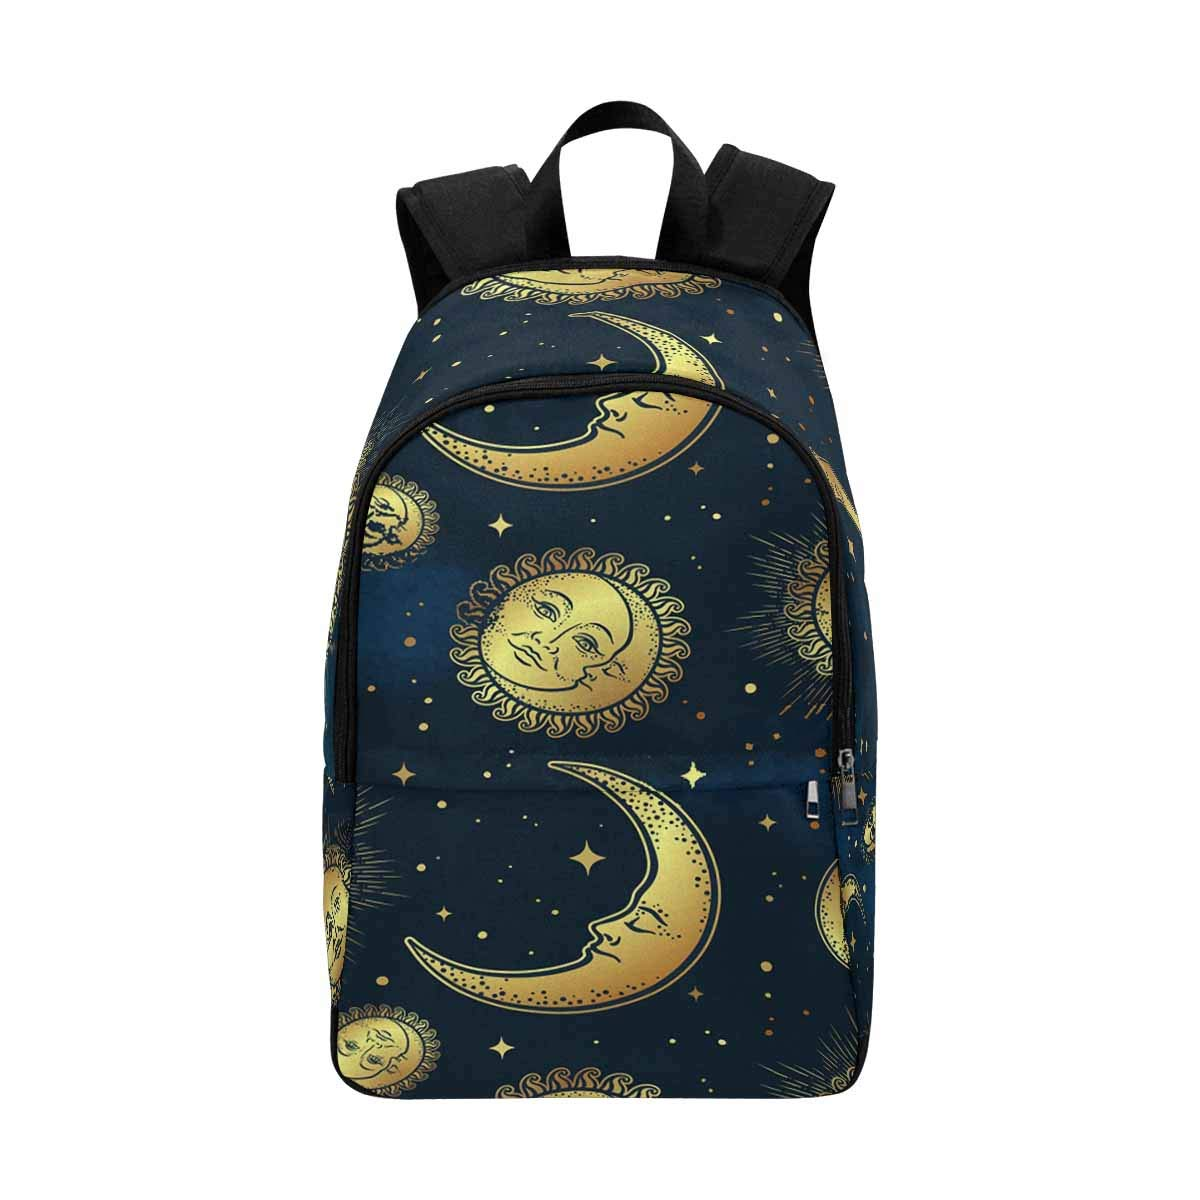 InterestPrint APPAREL ガールズ US サイズ: backpack   B07G6YNV39